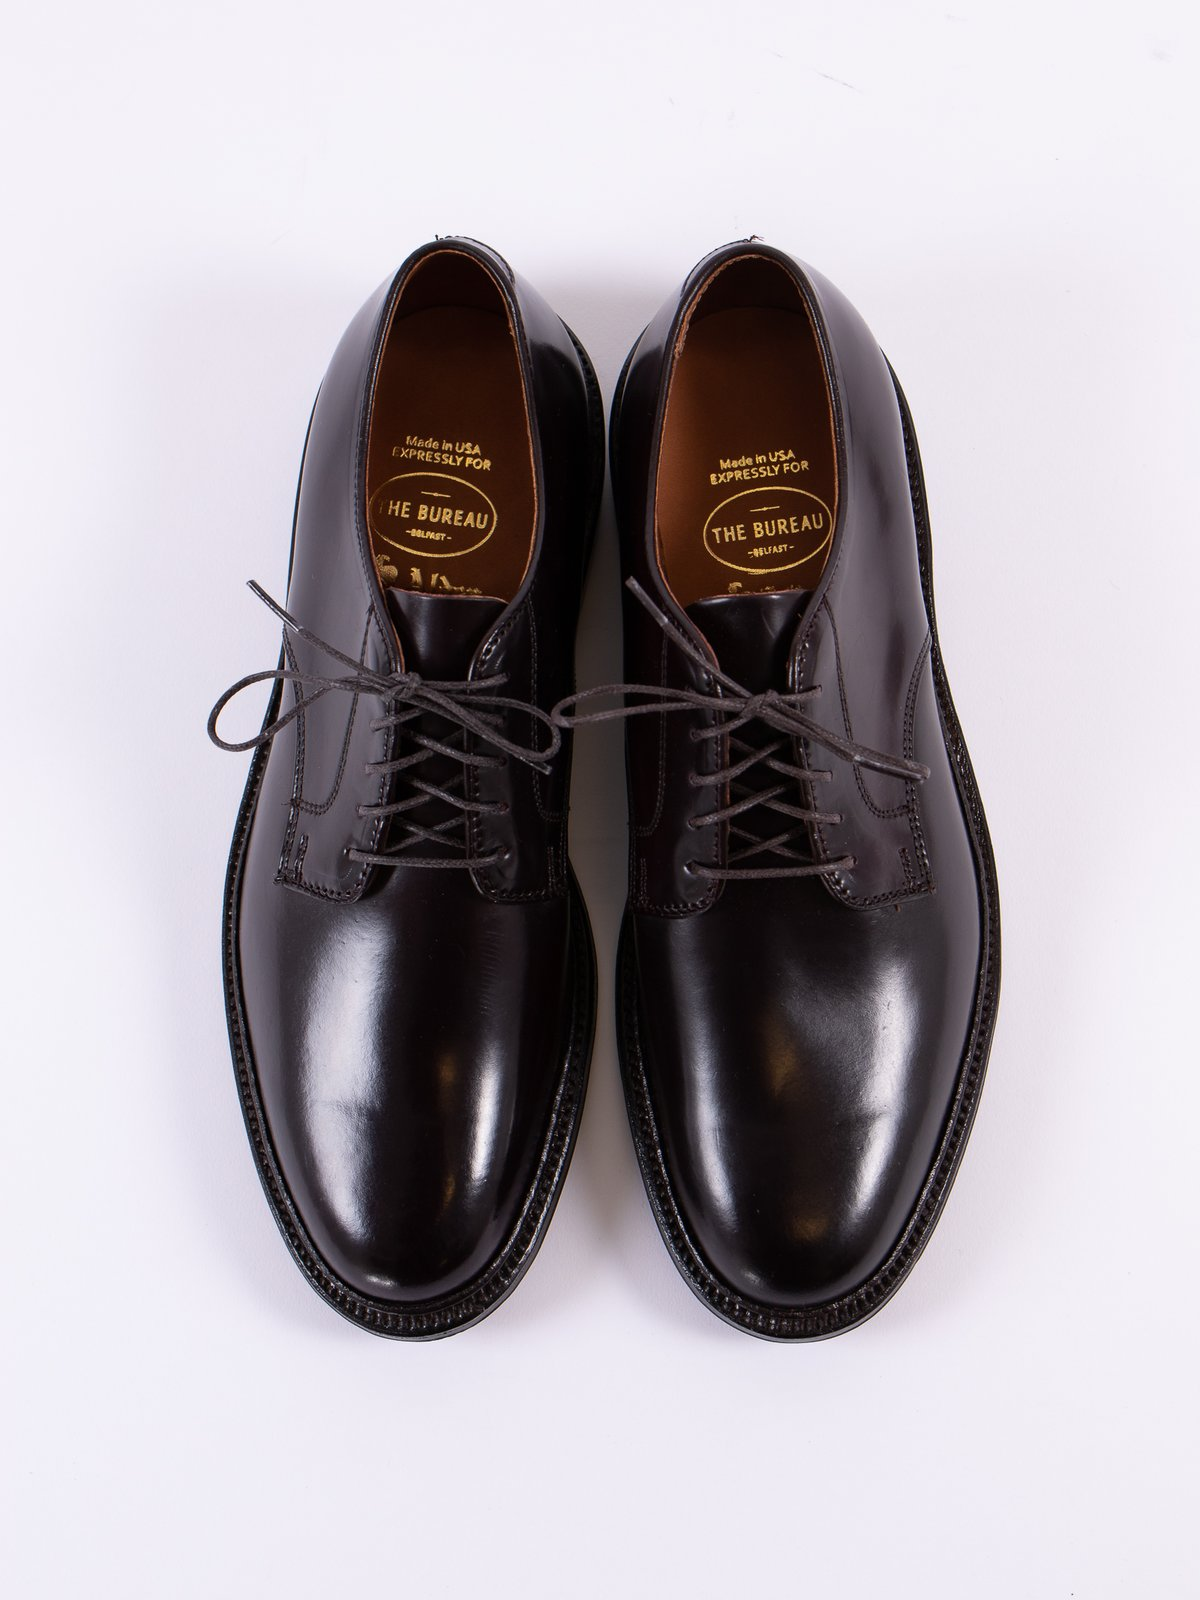 Color 8 Cordovan Plain Toe Blucher with Leather Sole - Image 6